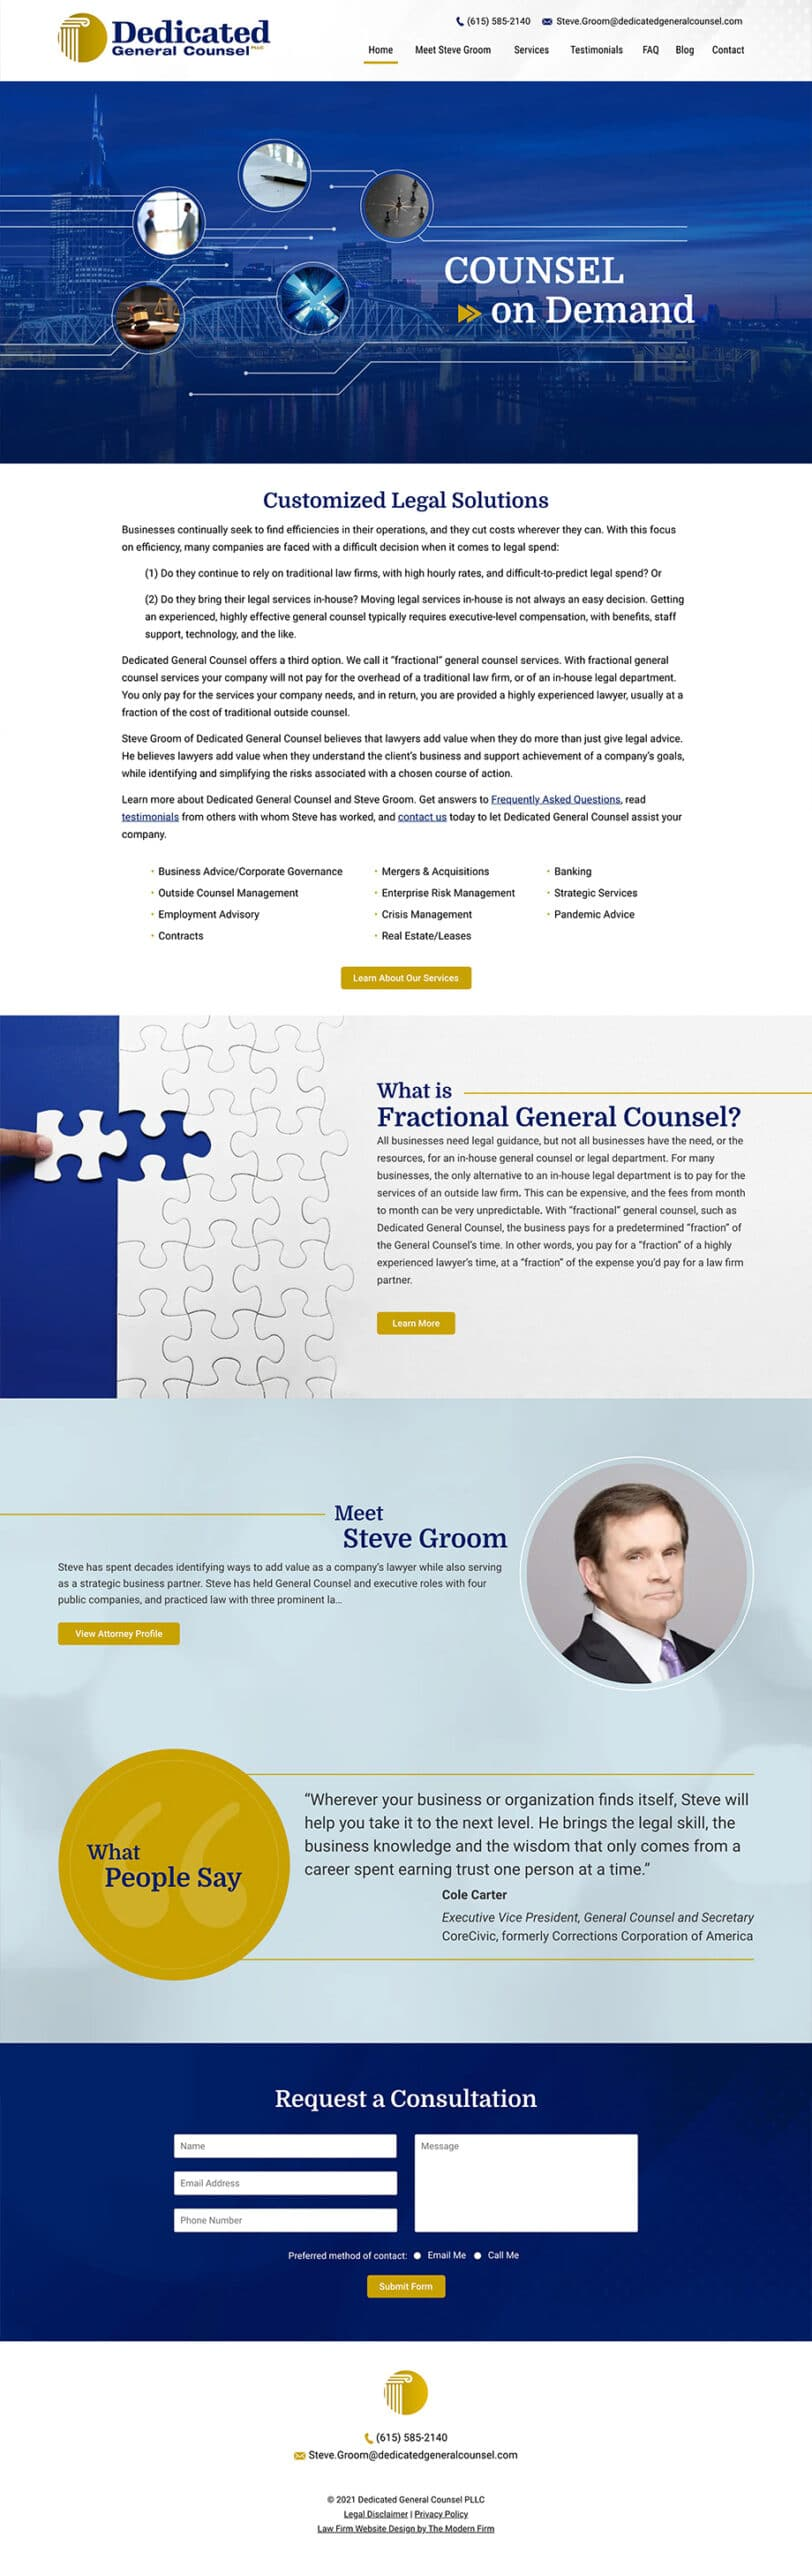 Law Firm Website Design for Dedicated General Counsel PLLC